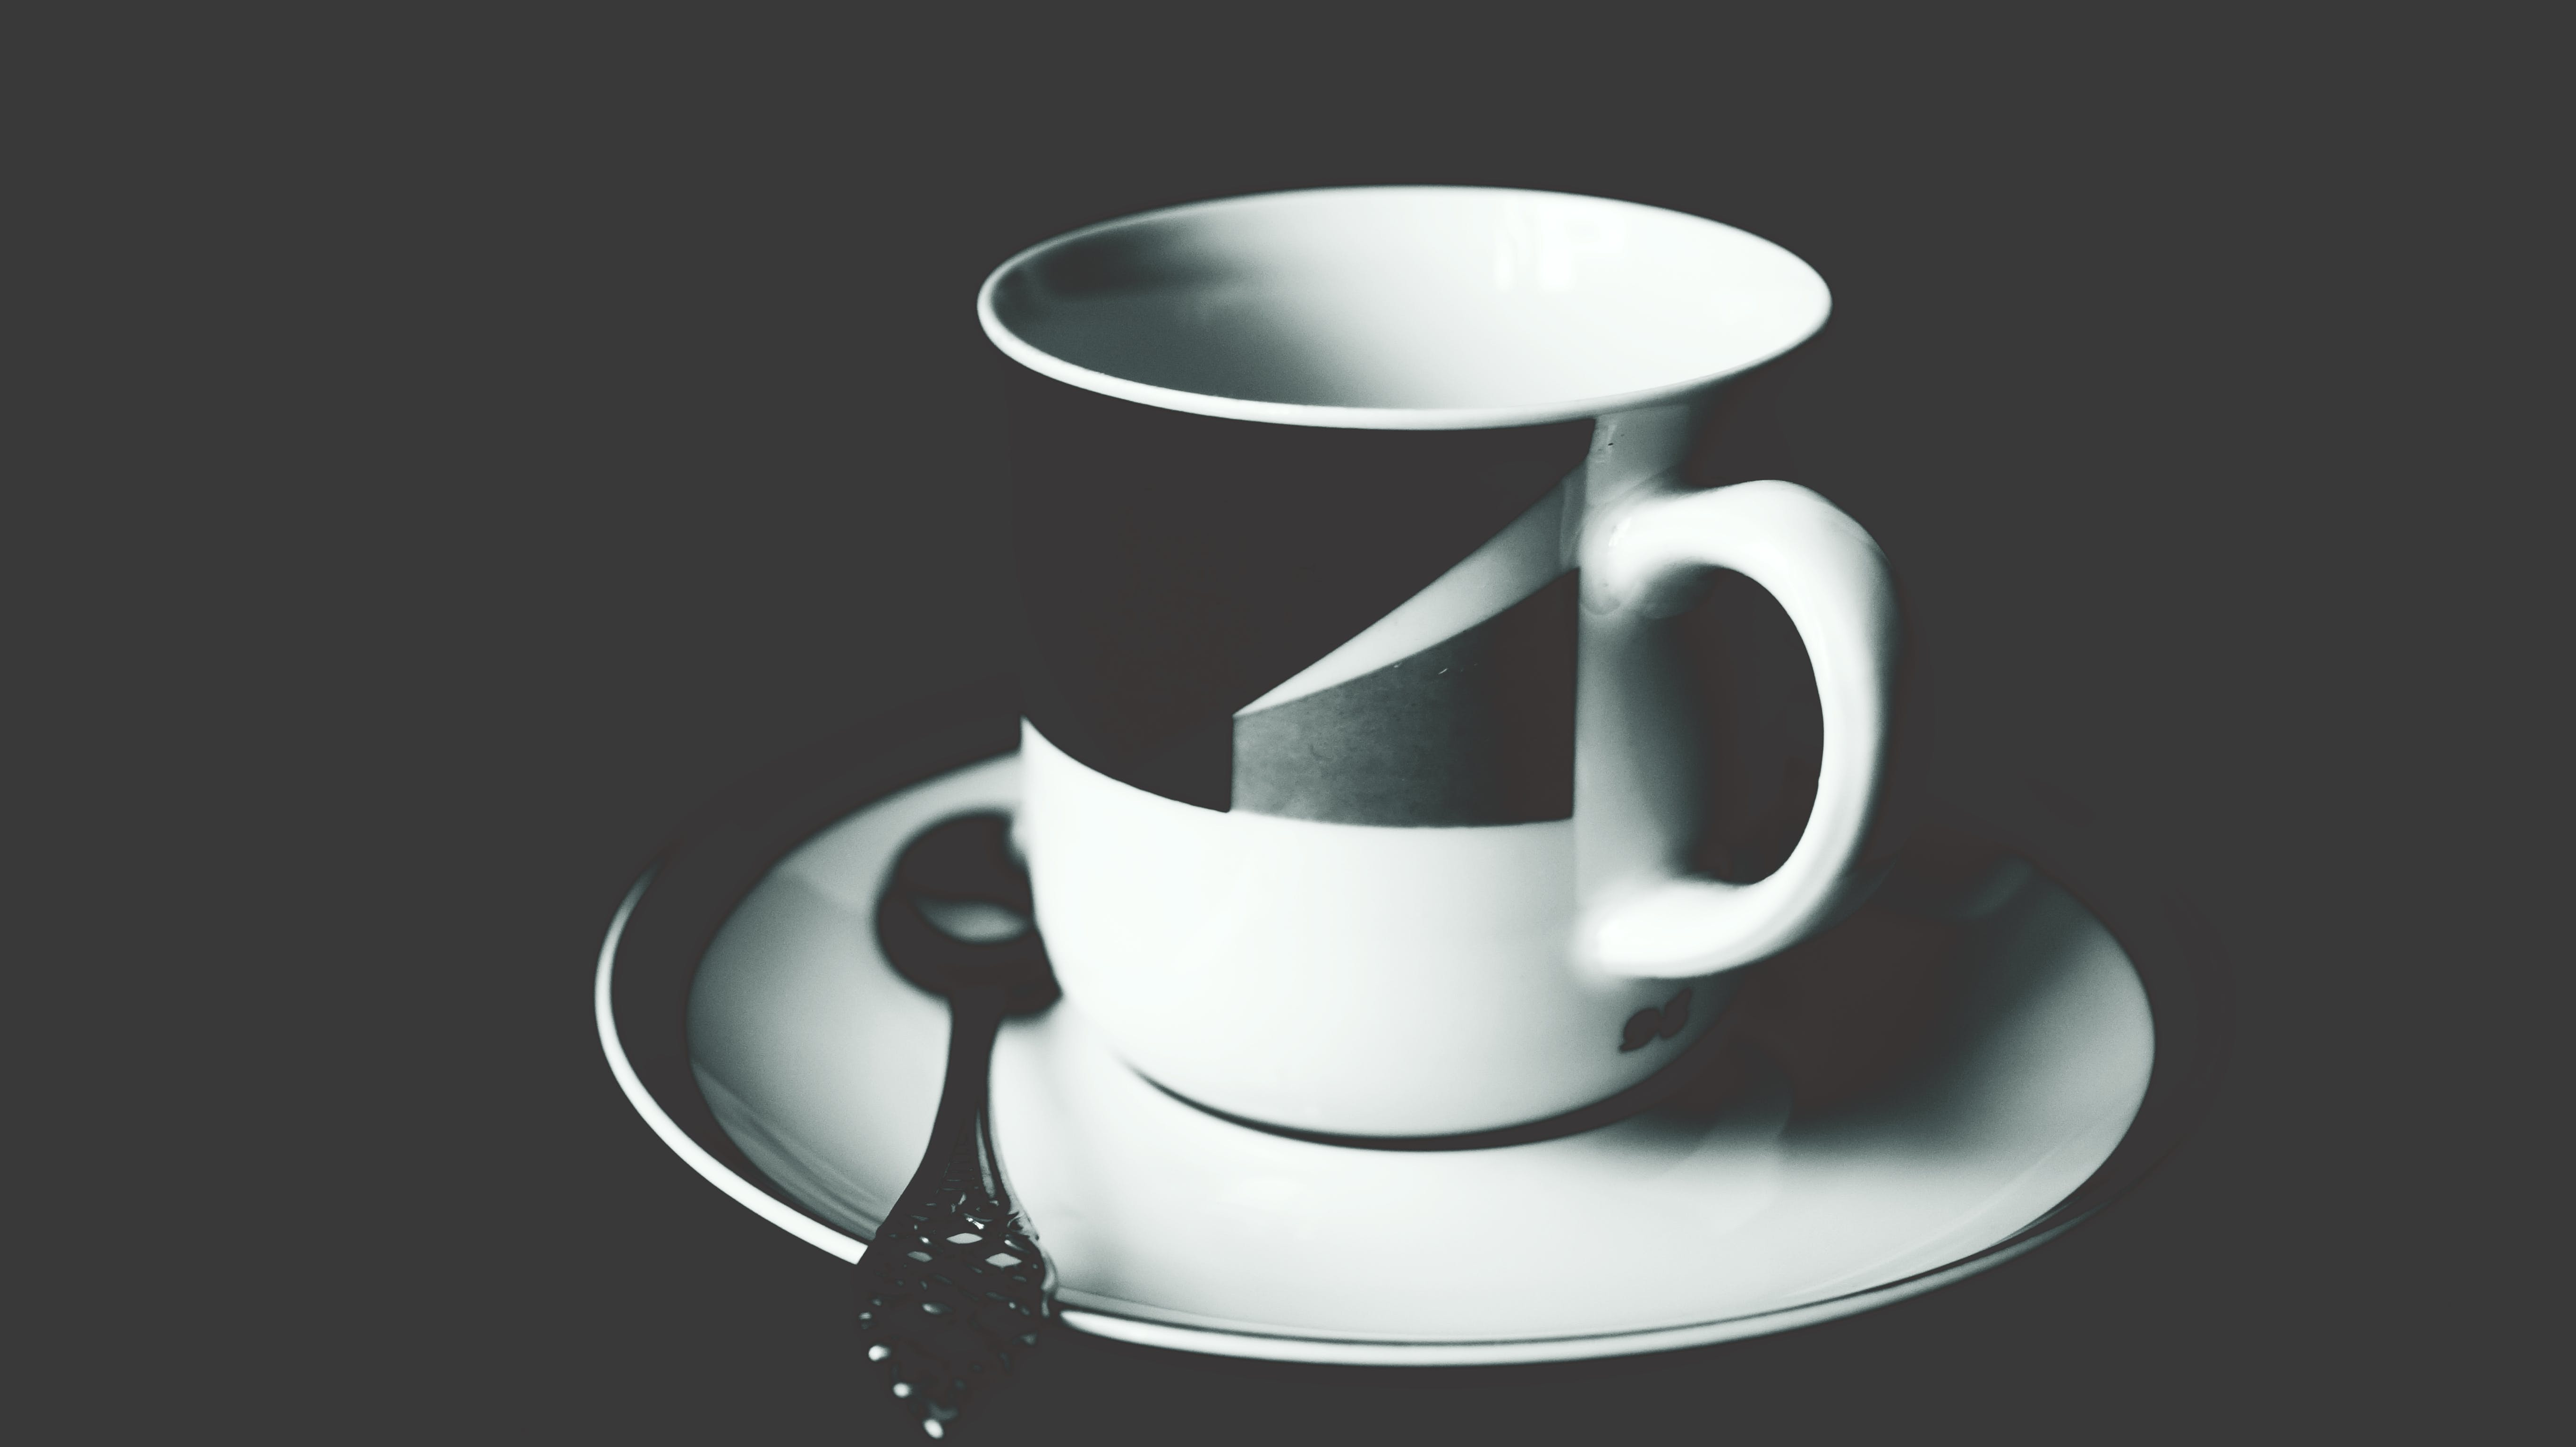 White and Black Ceramic Tea Mug on White Ceramic Round Plate and Stainless Steel Spoon on Top